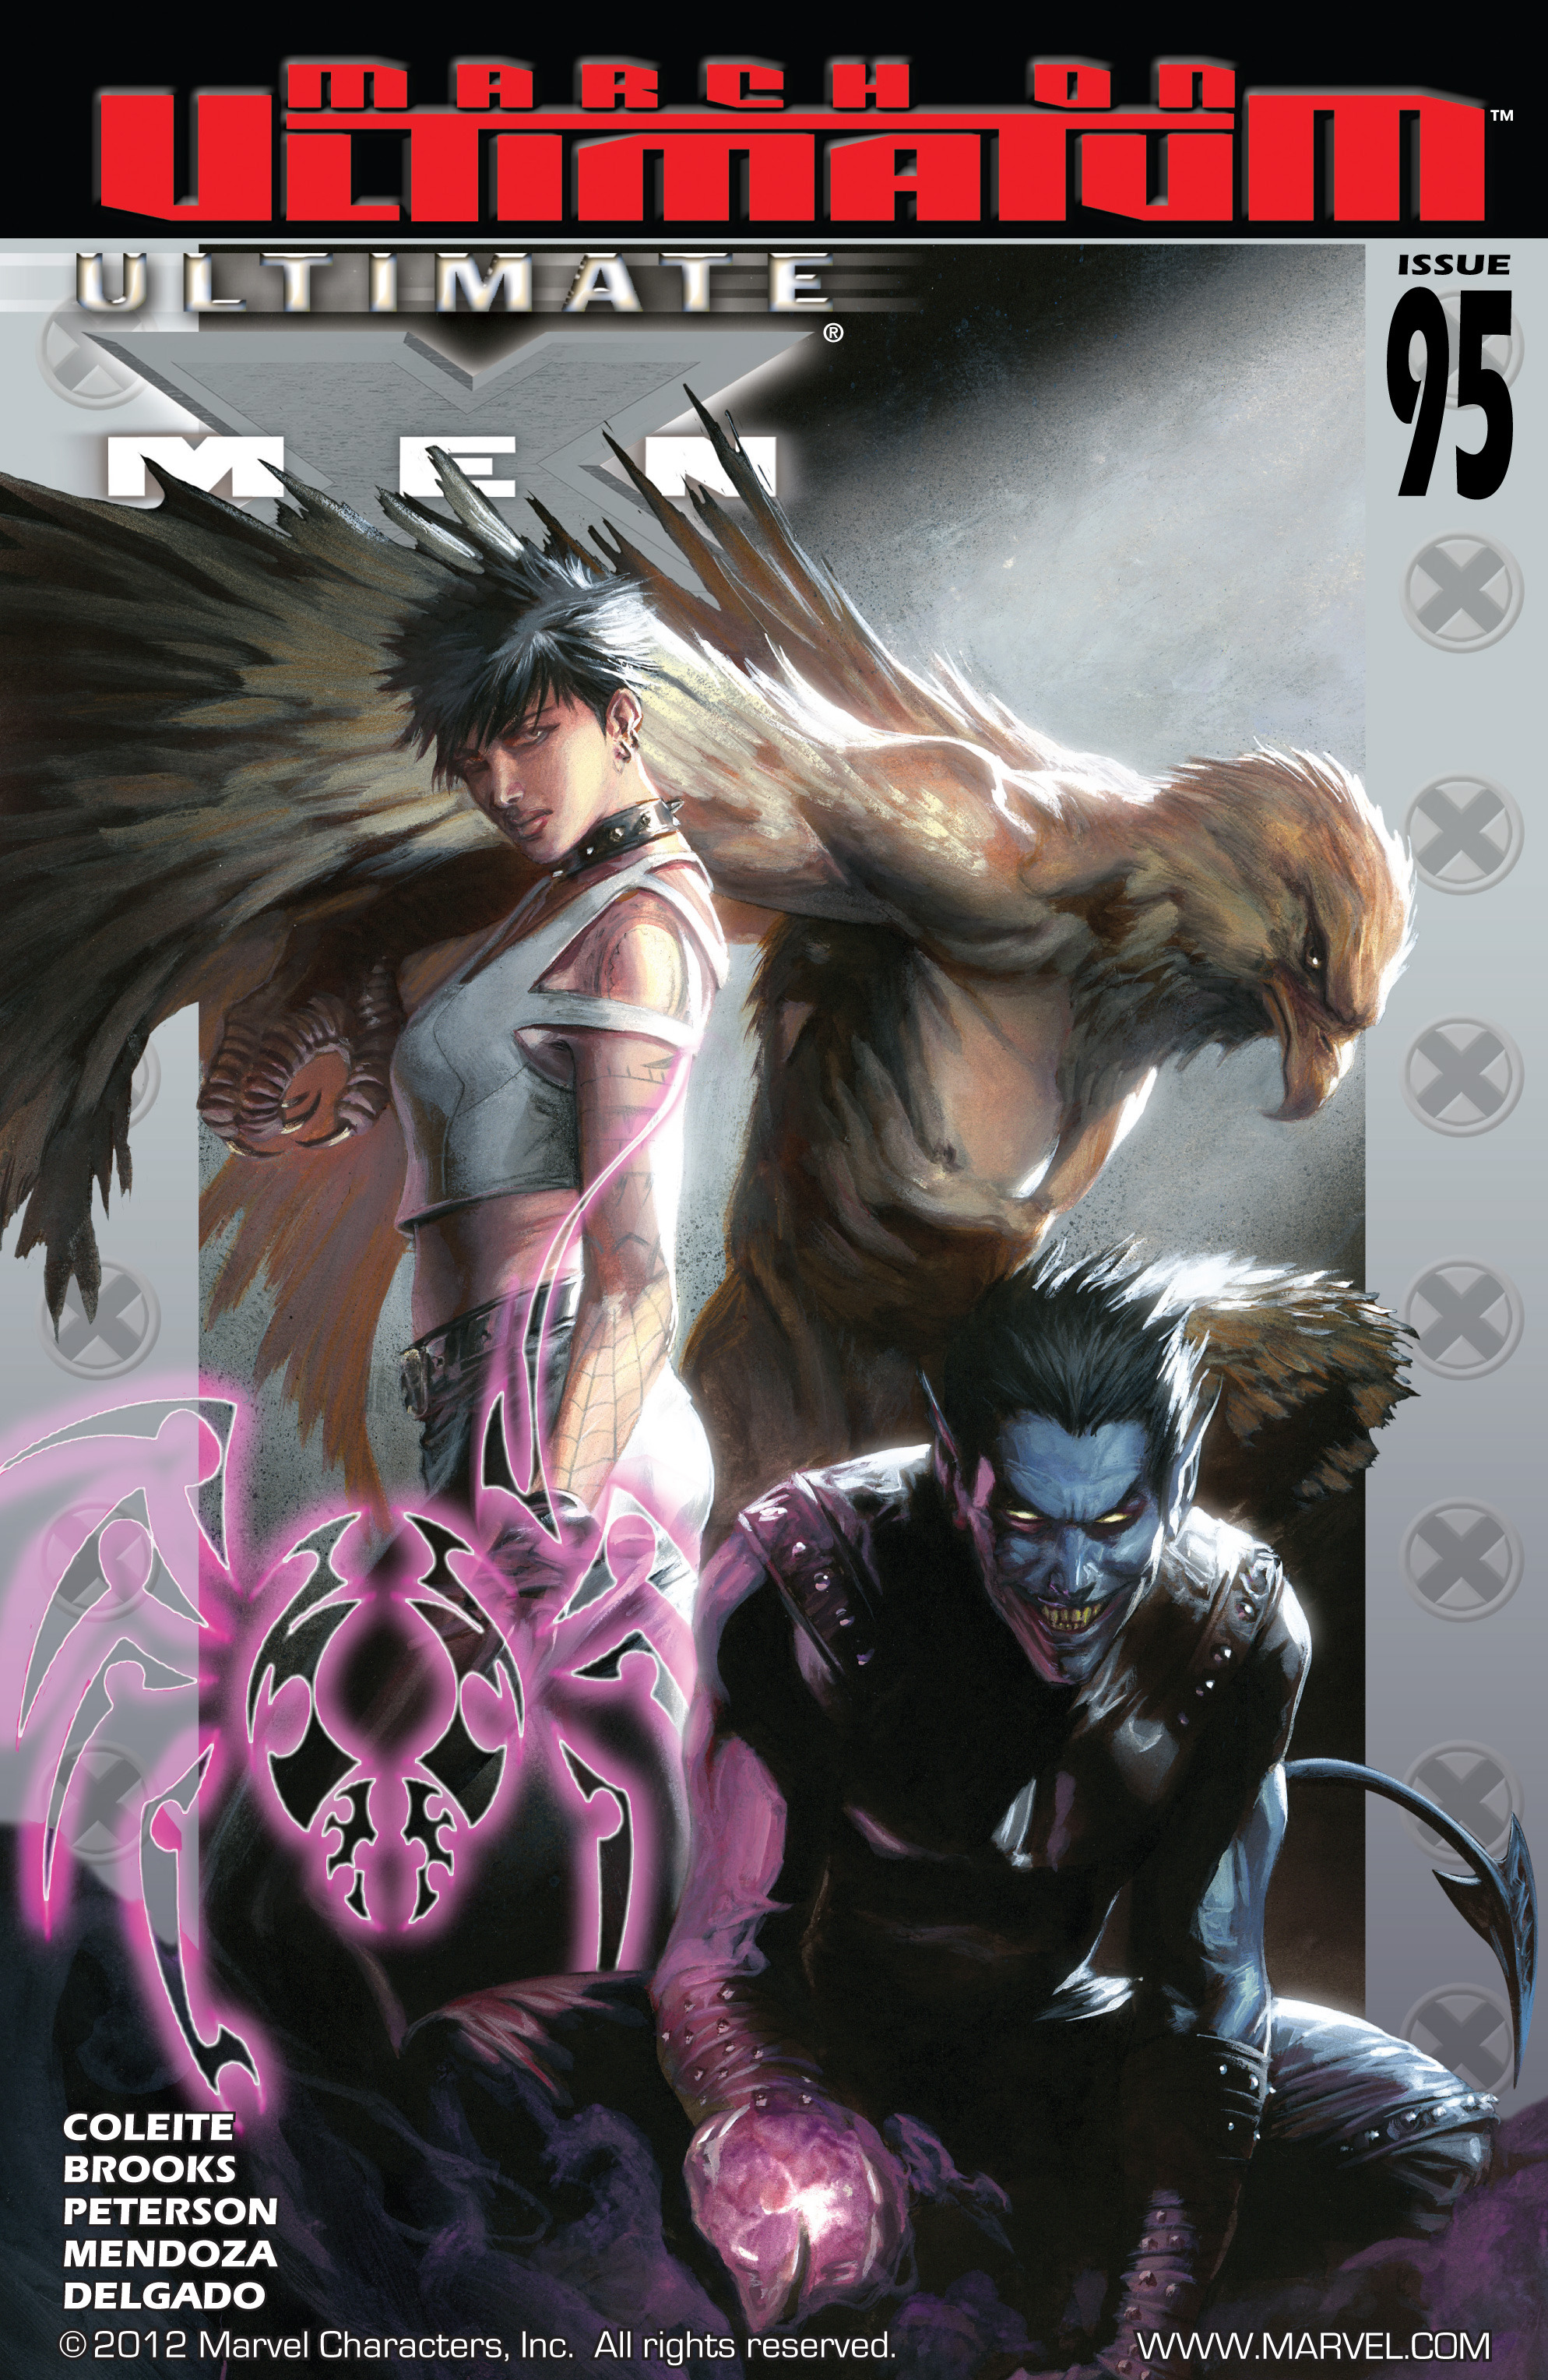 Read online Ultimate X-Men comic -  Issue #95 - 1